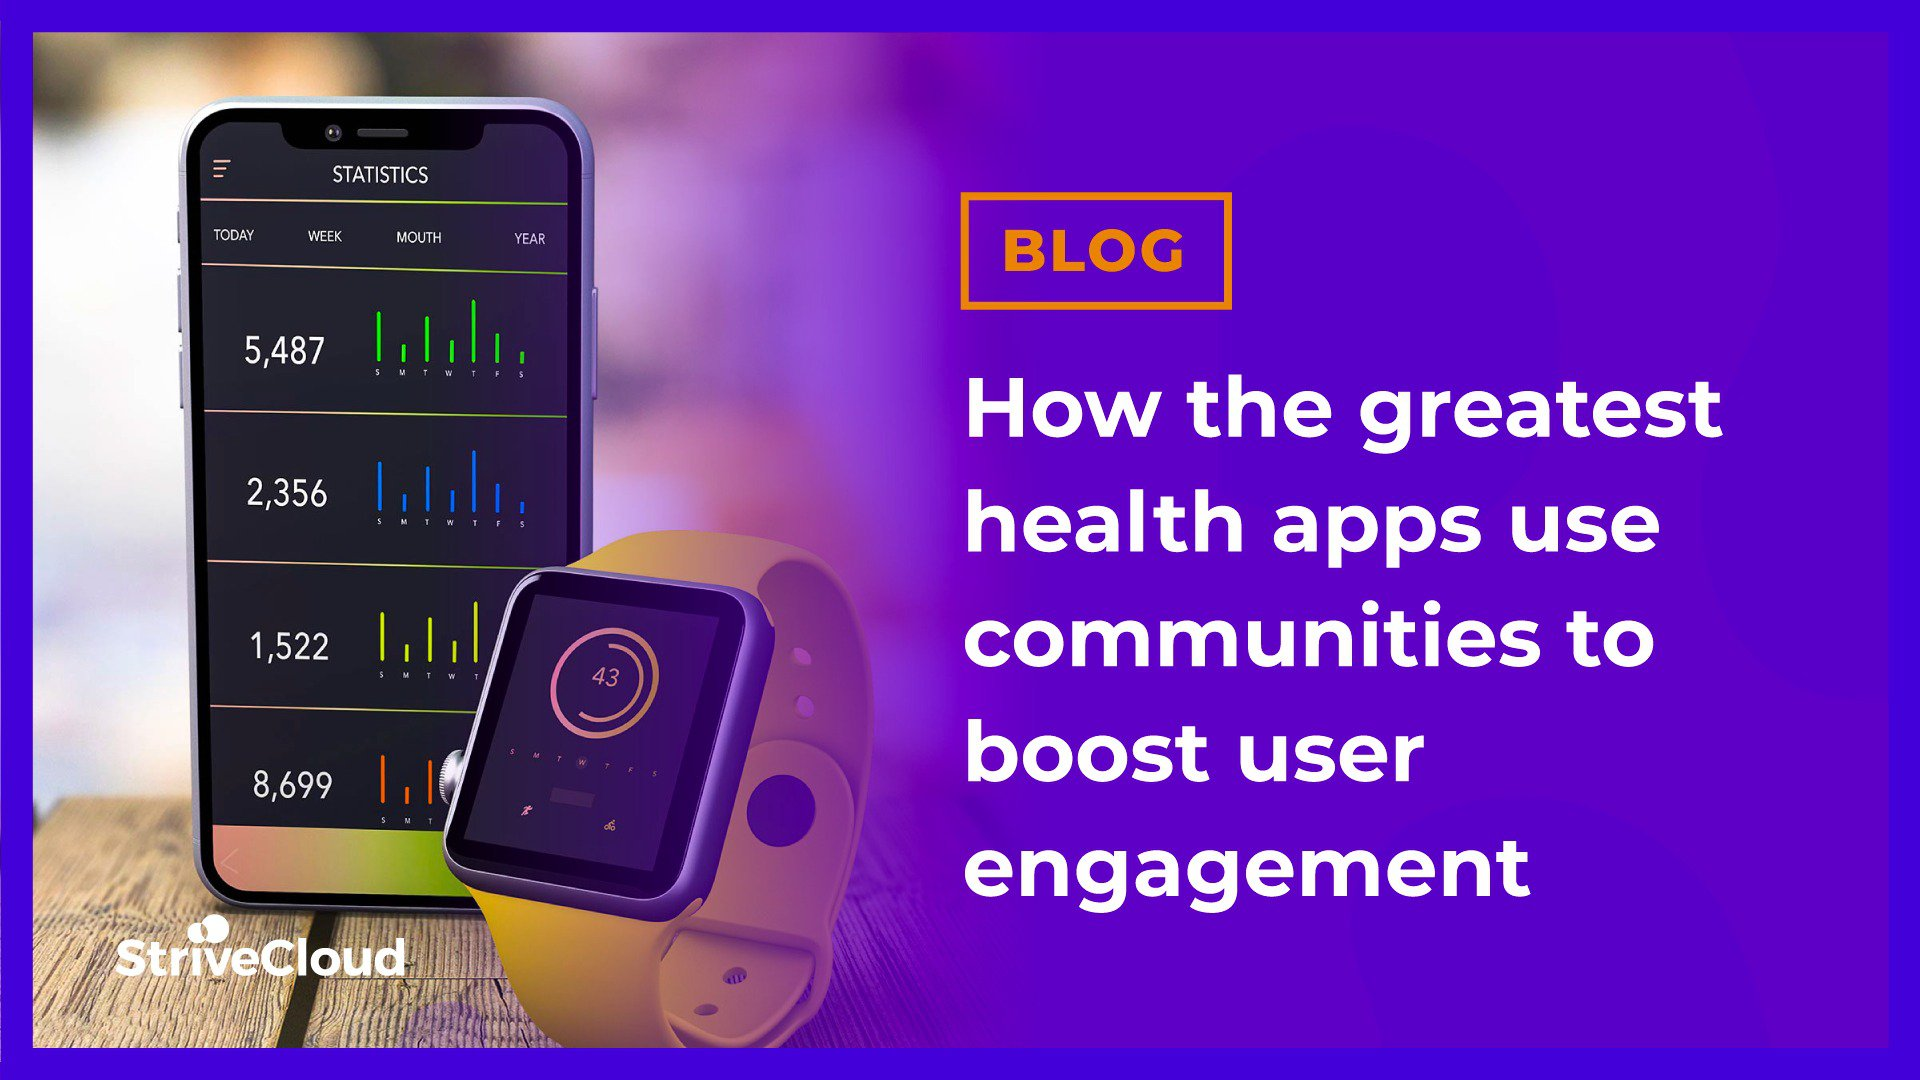 How to greatest health apps use communities to boost user engagement